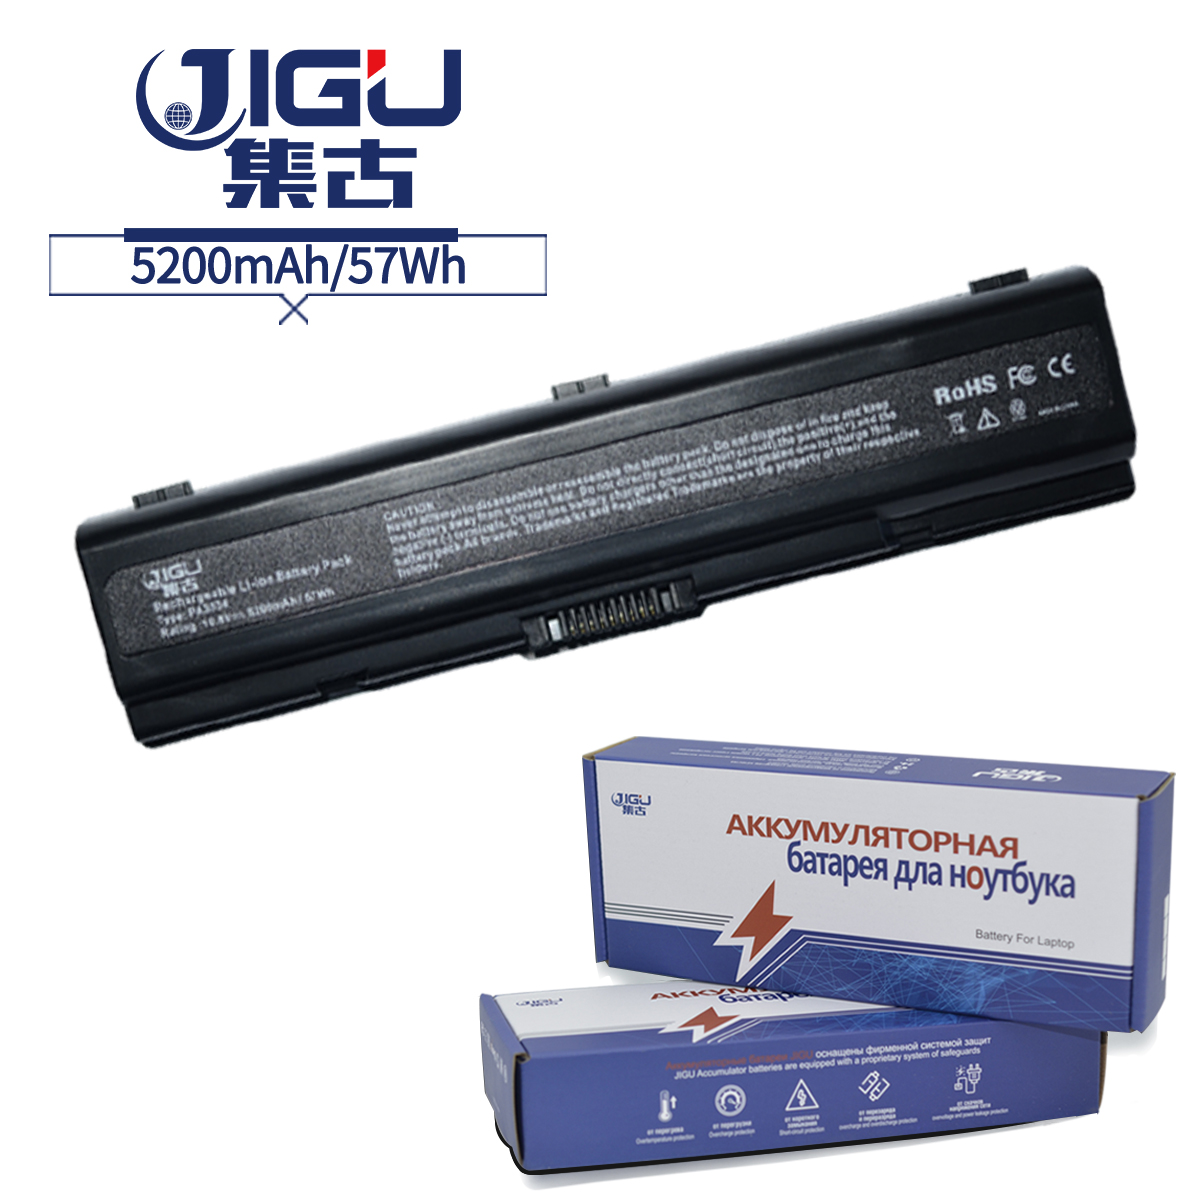 Toshiba Satellite A300 Chinese Goods Catalog Baterai A200 M200 A205 L200 Pa3534 Pa3535 Black Jigu Laptop Battery Equium A300d